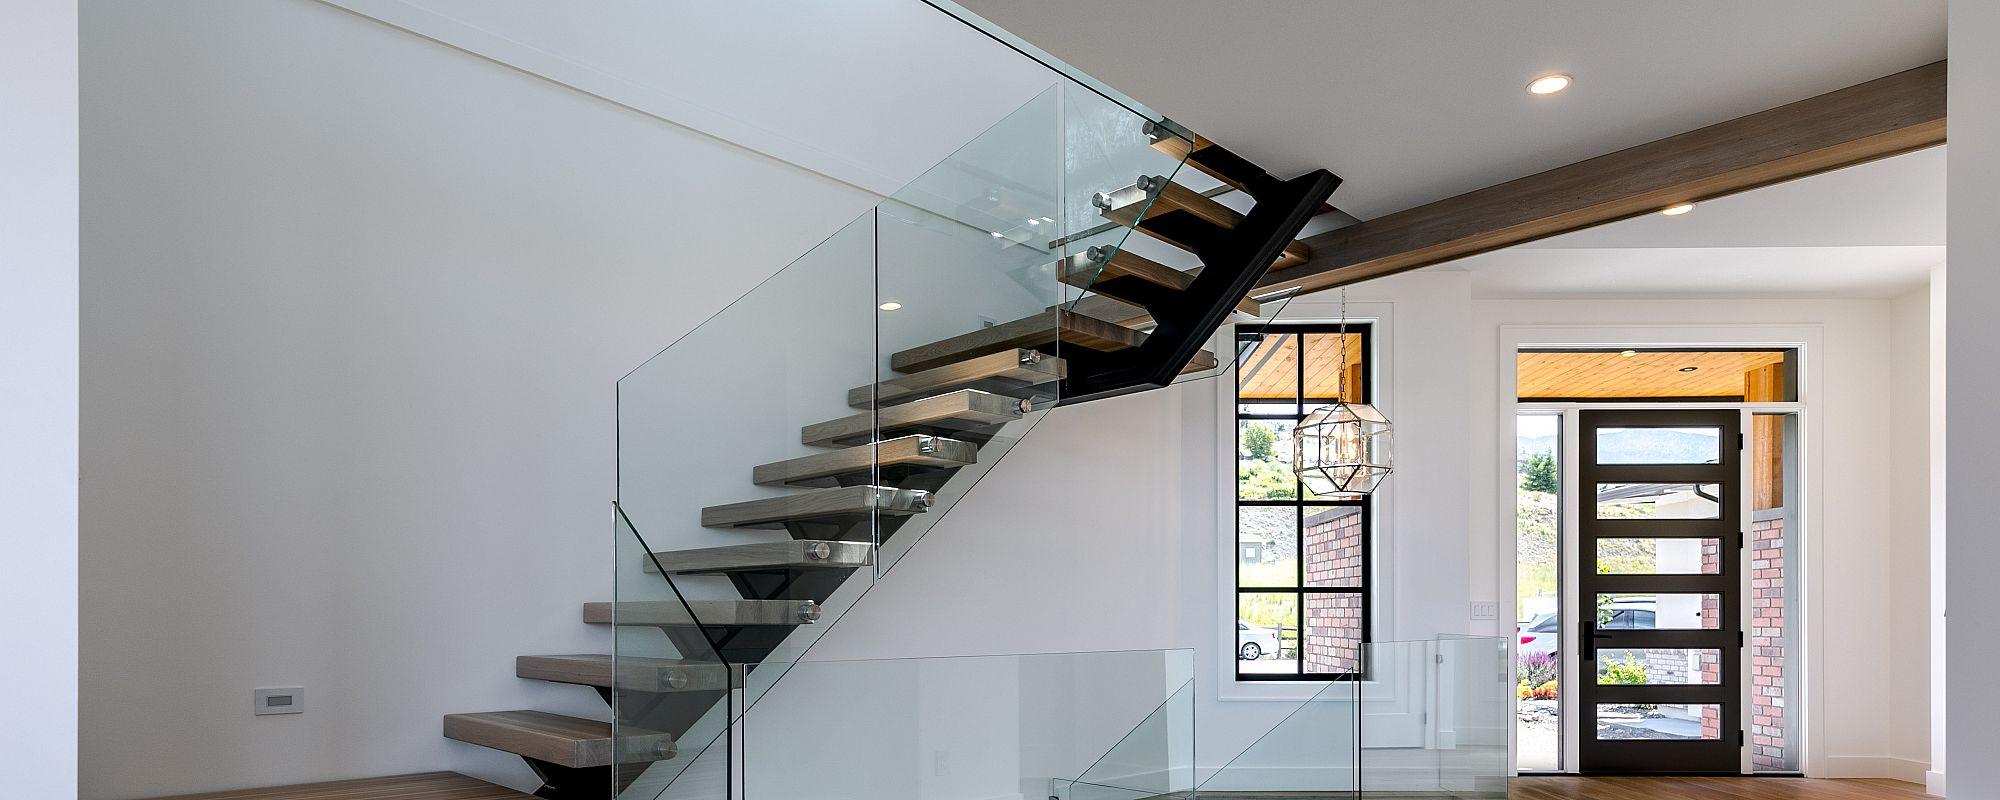 Modern glass and black frame doors and windows in entrance way with wooden stairs